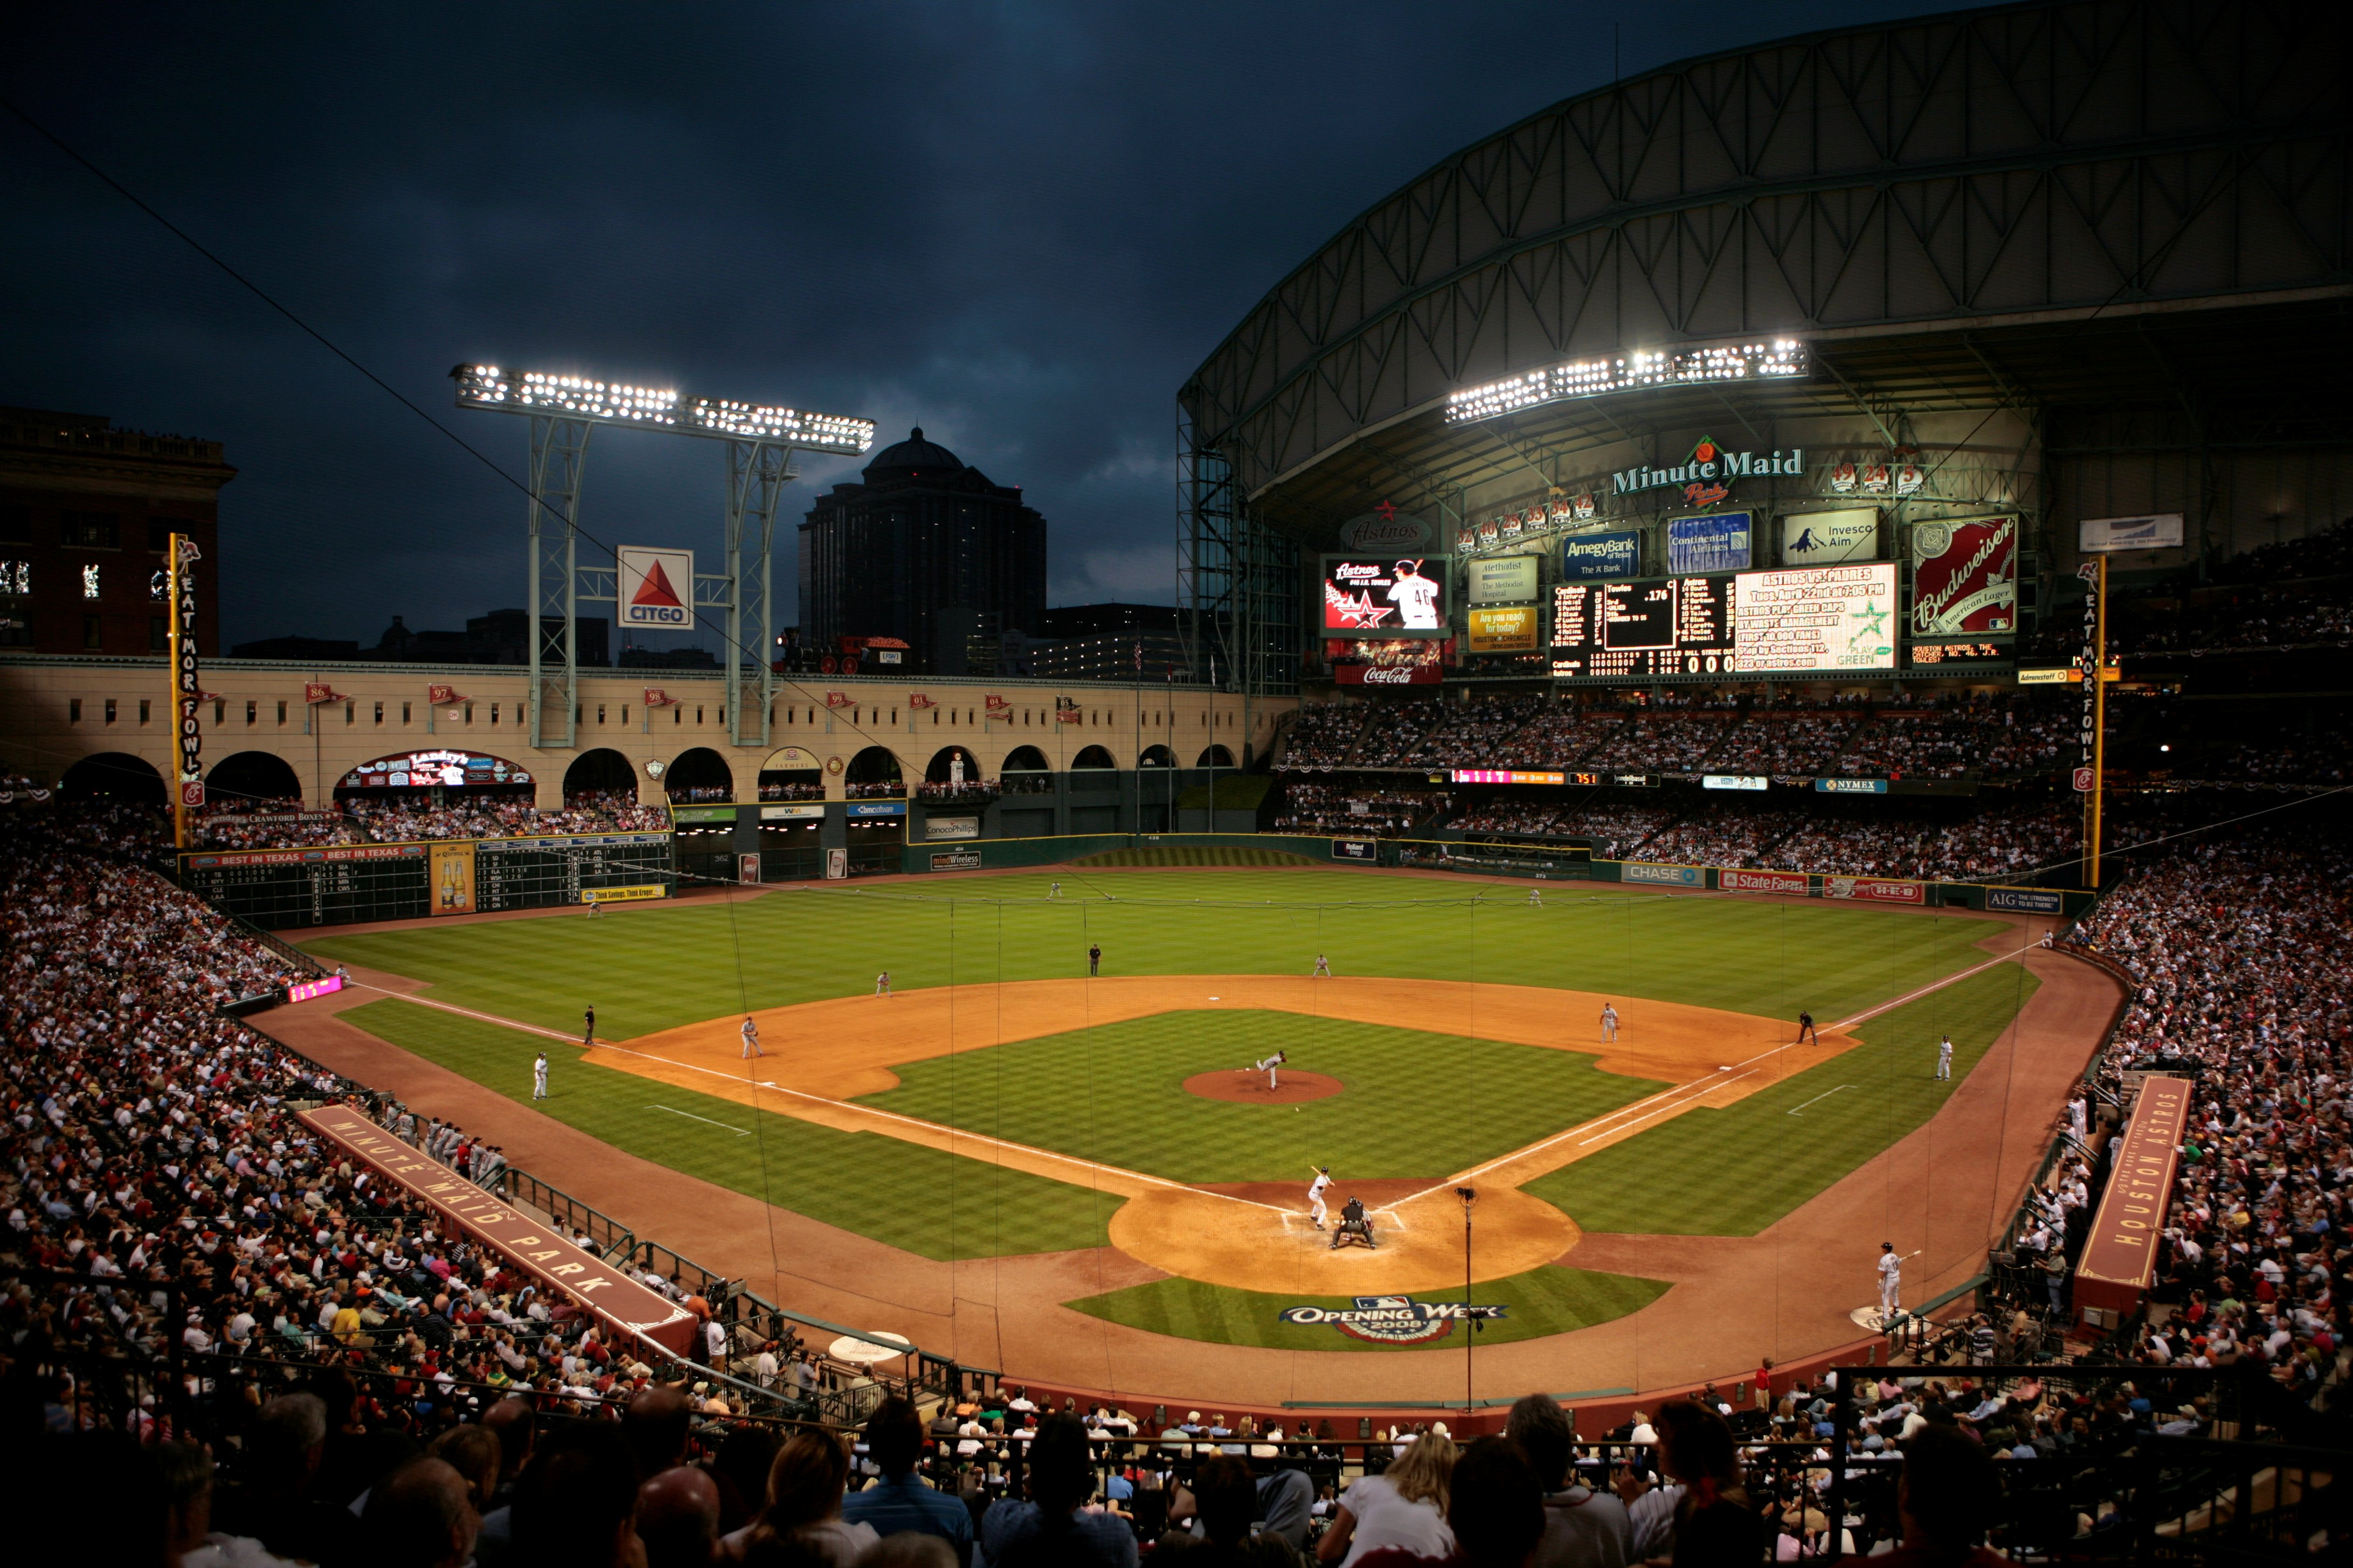 houston astros mlb baseball 25 wallpaper 4366x2910